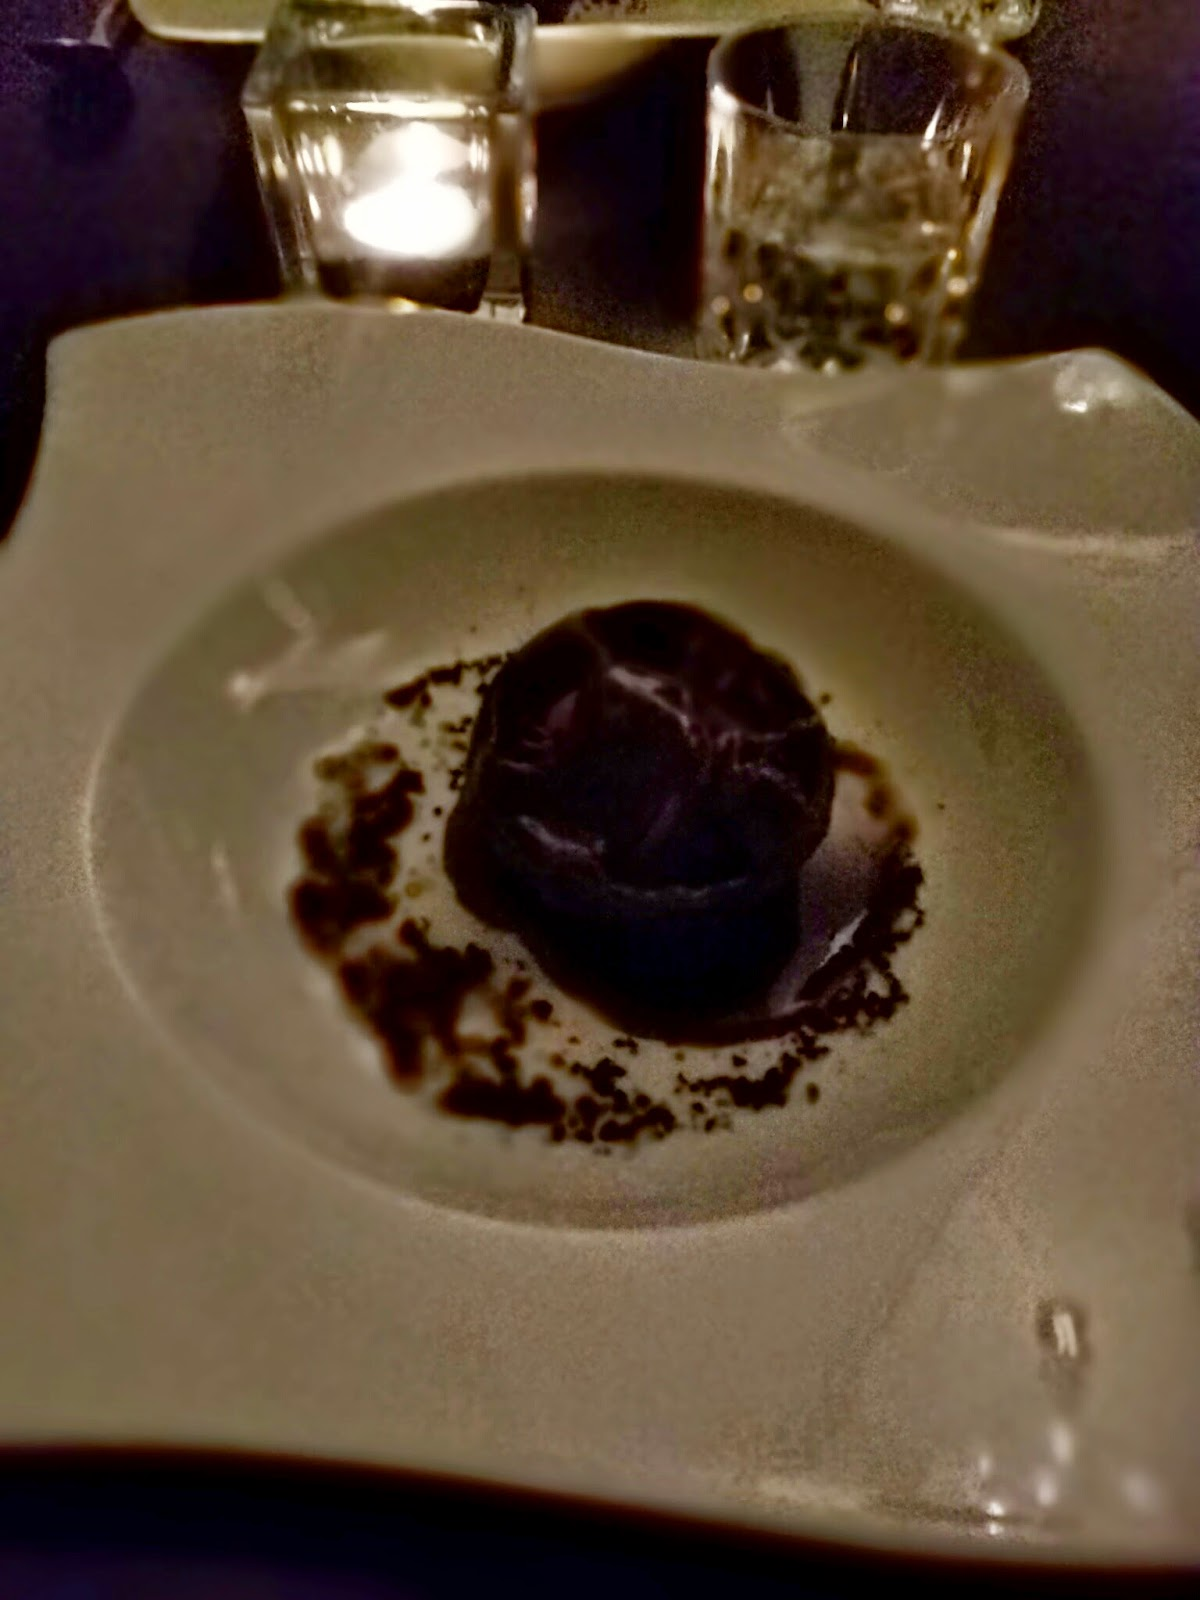 Chocolate sphere dessert at Tavern in the Dylan Hotel in Dublin